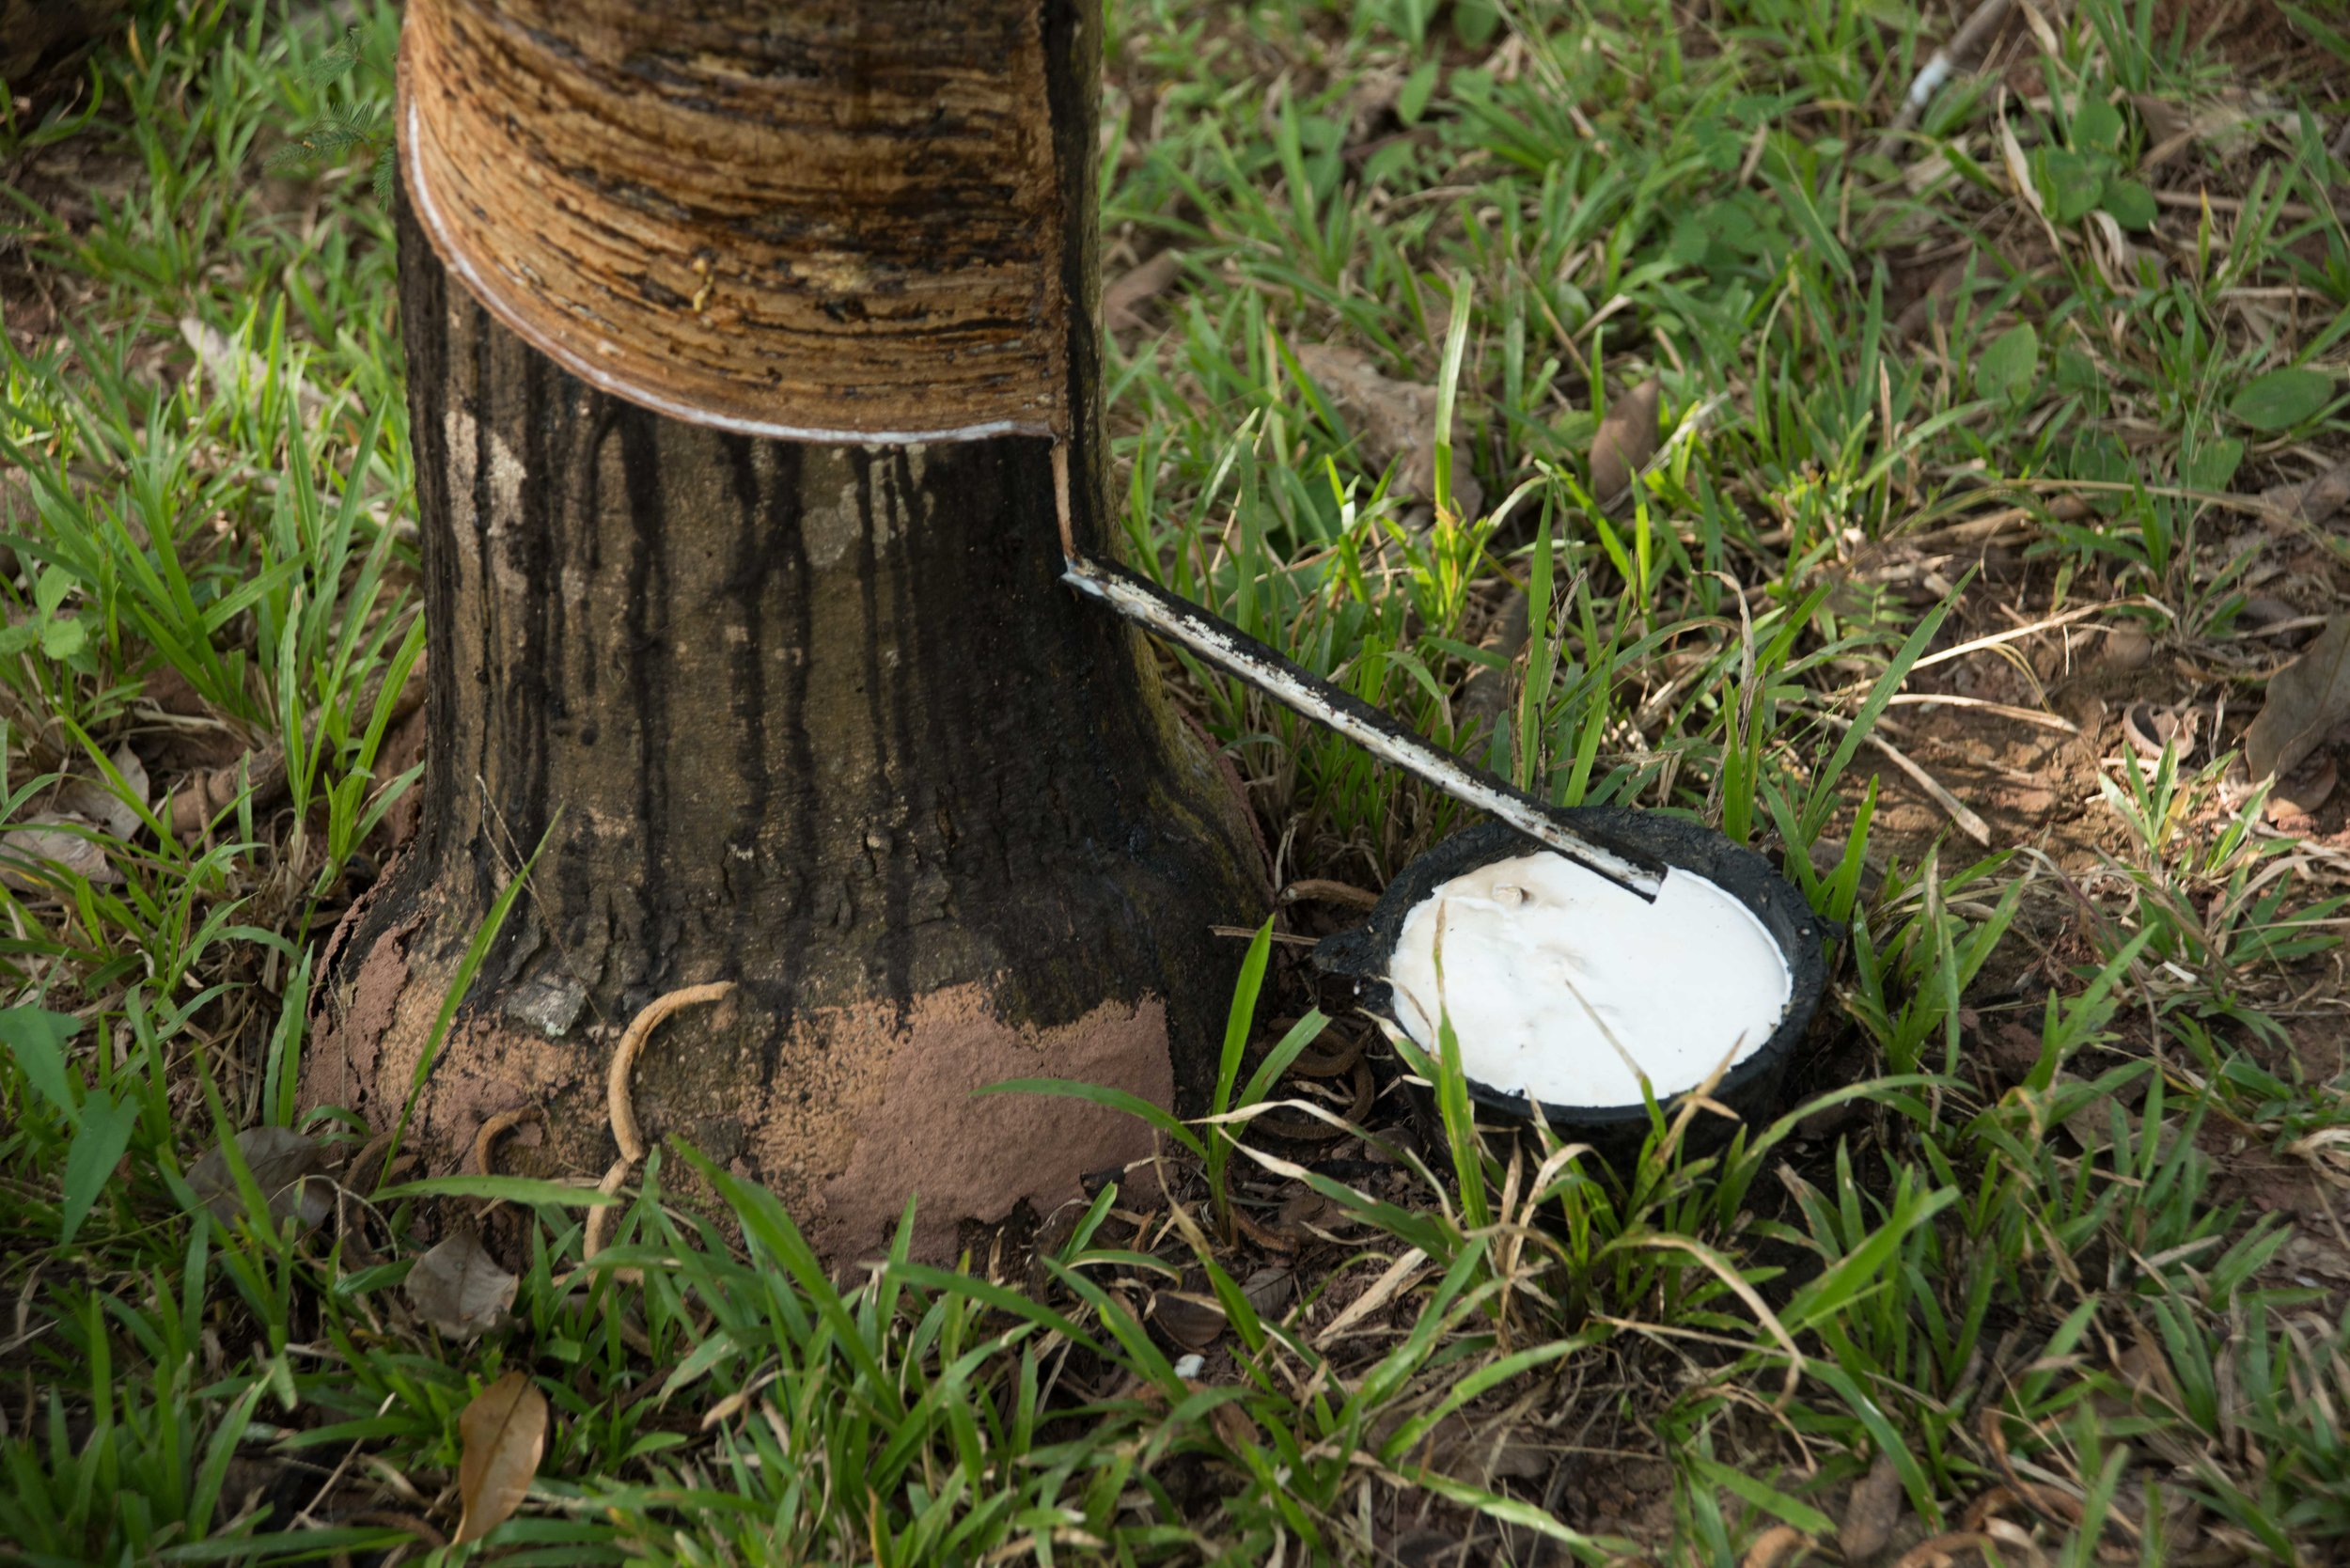 Extracting rubber from rubber tree 002, Laos, 28 Nov 2017.jpg